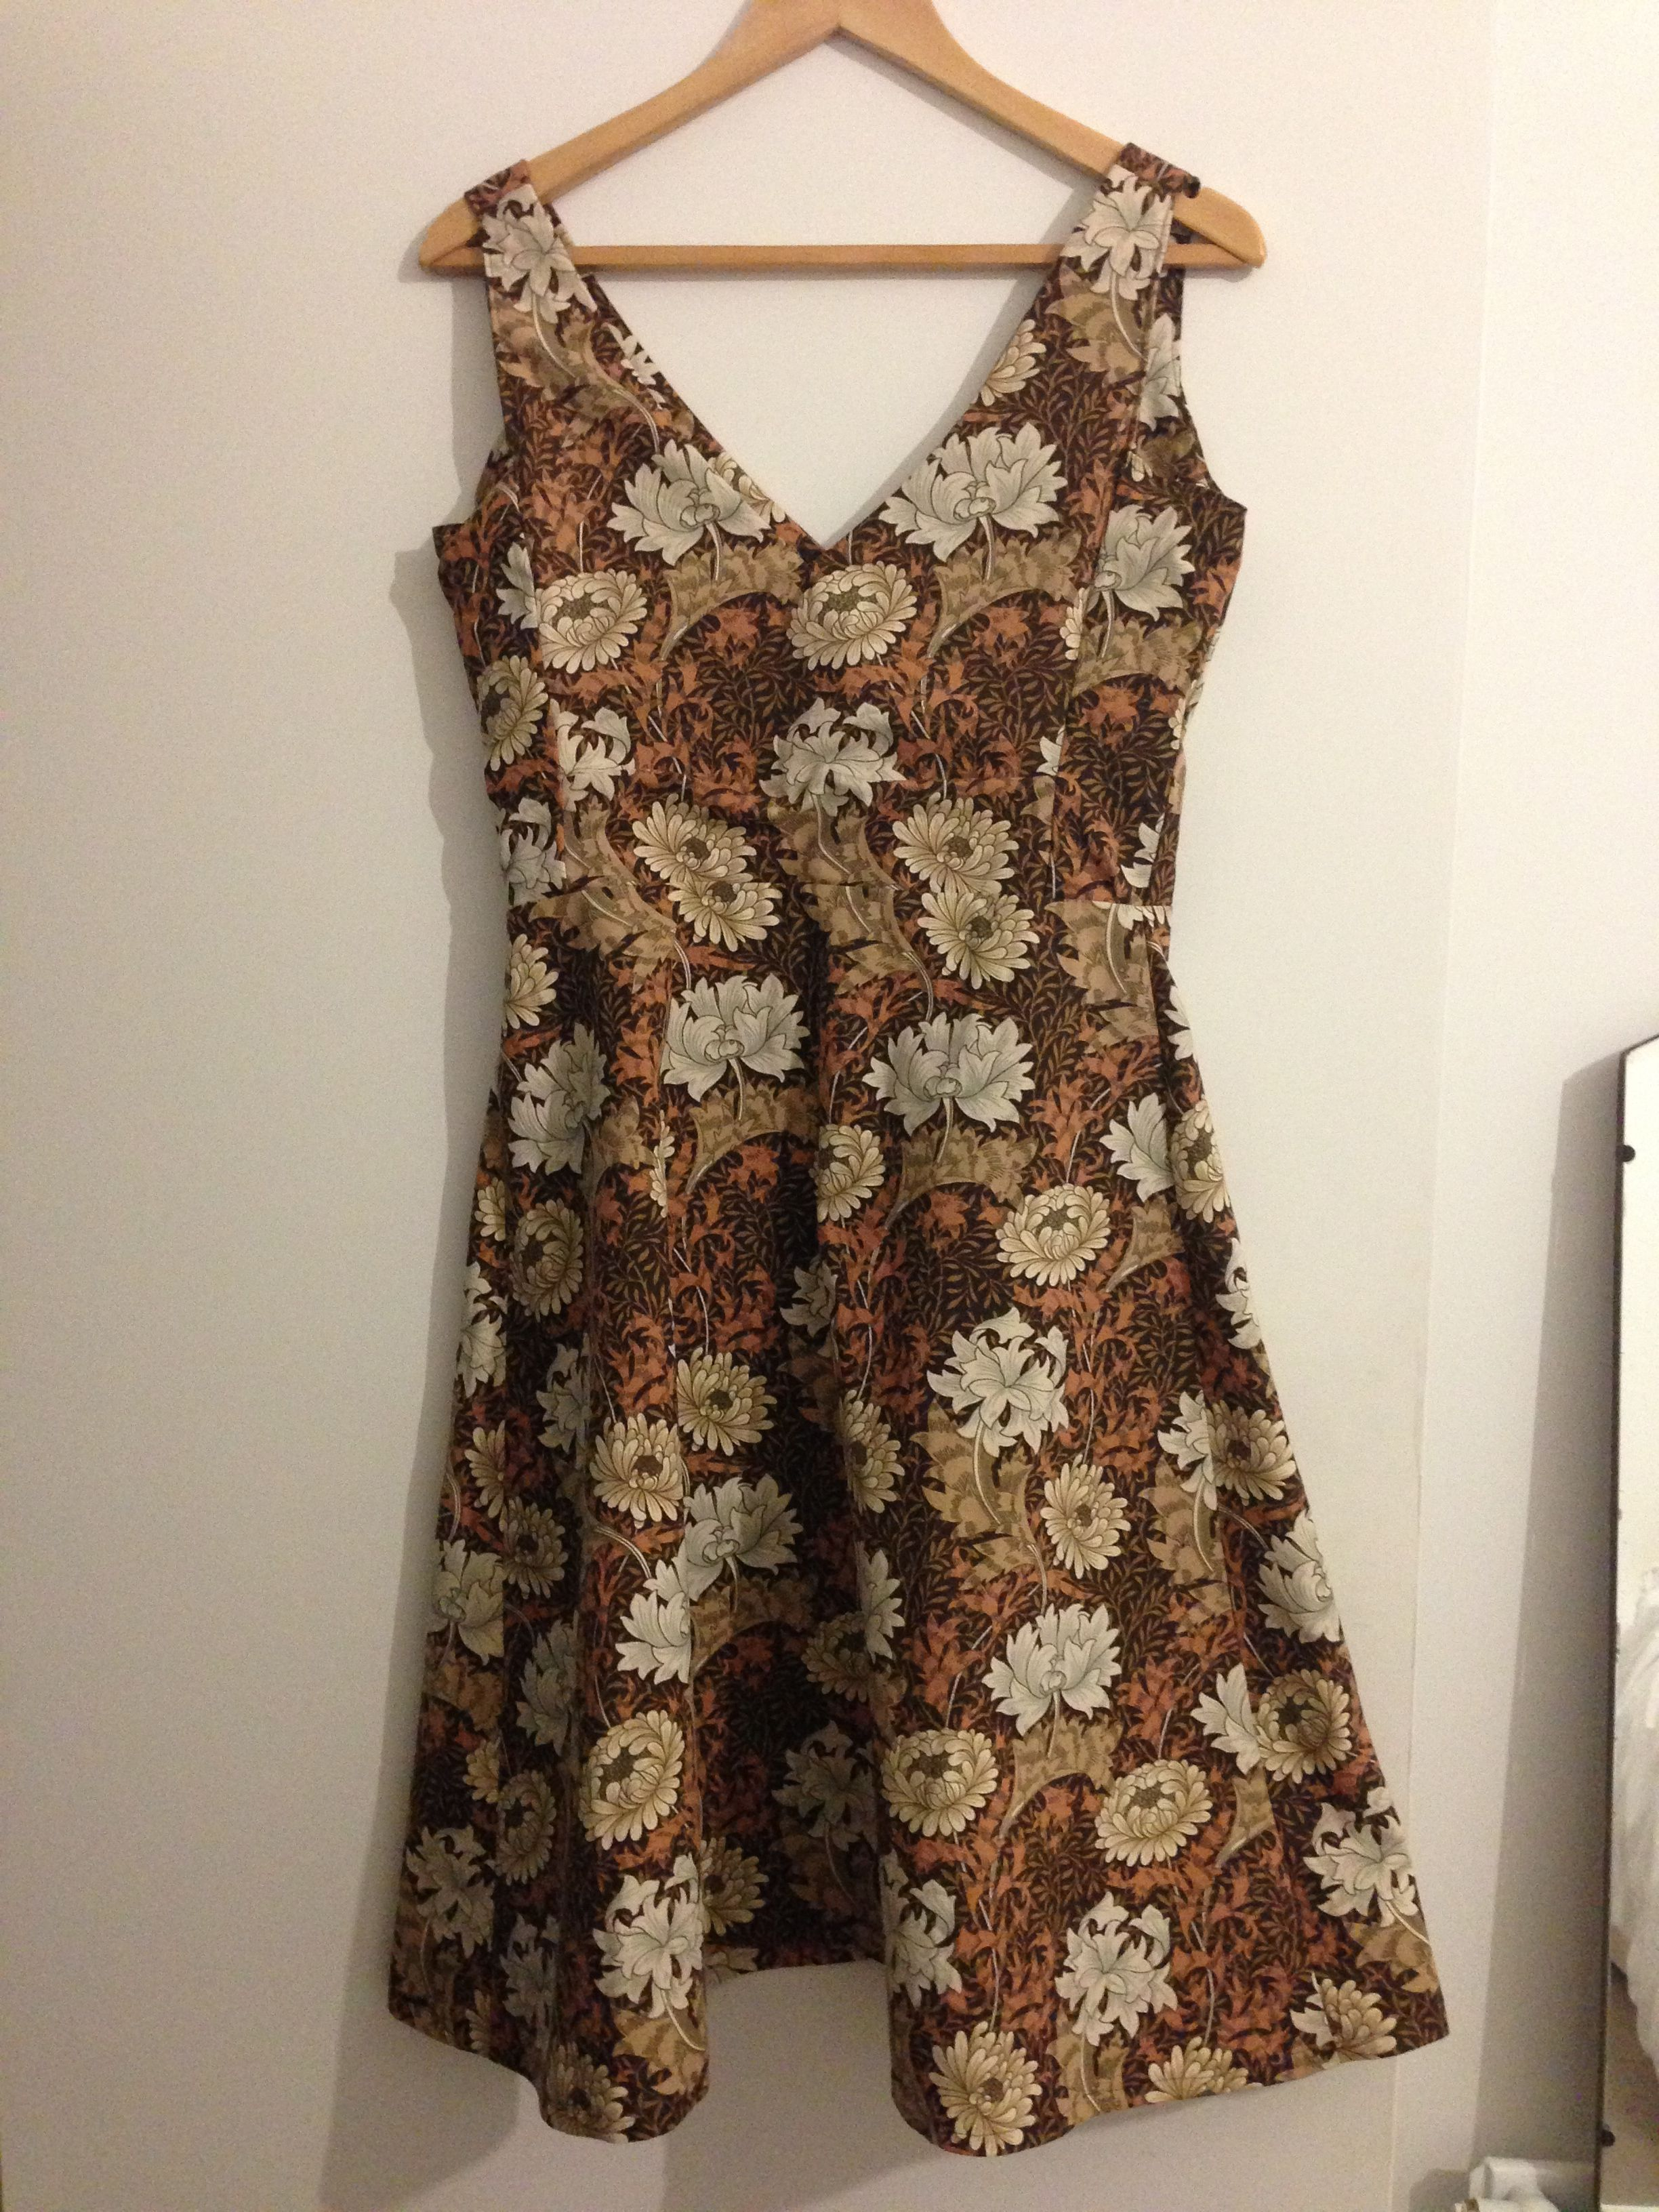 William Morris Handmade Chrysanthemum Print Dress Craft